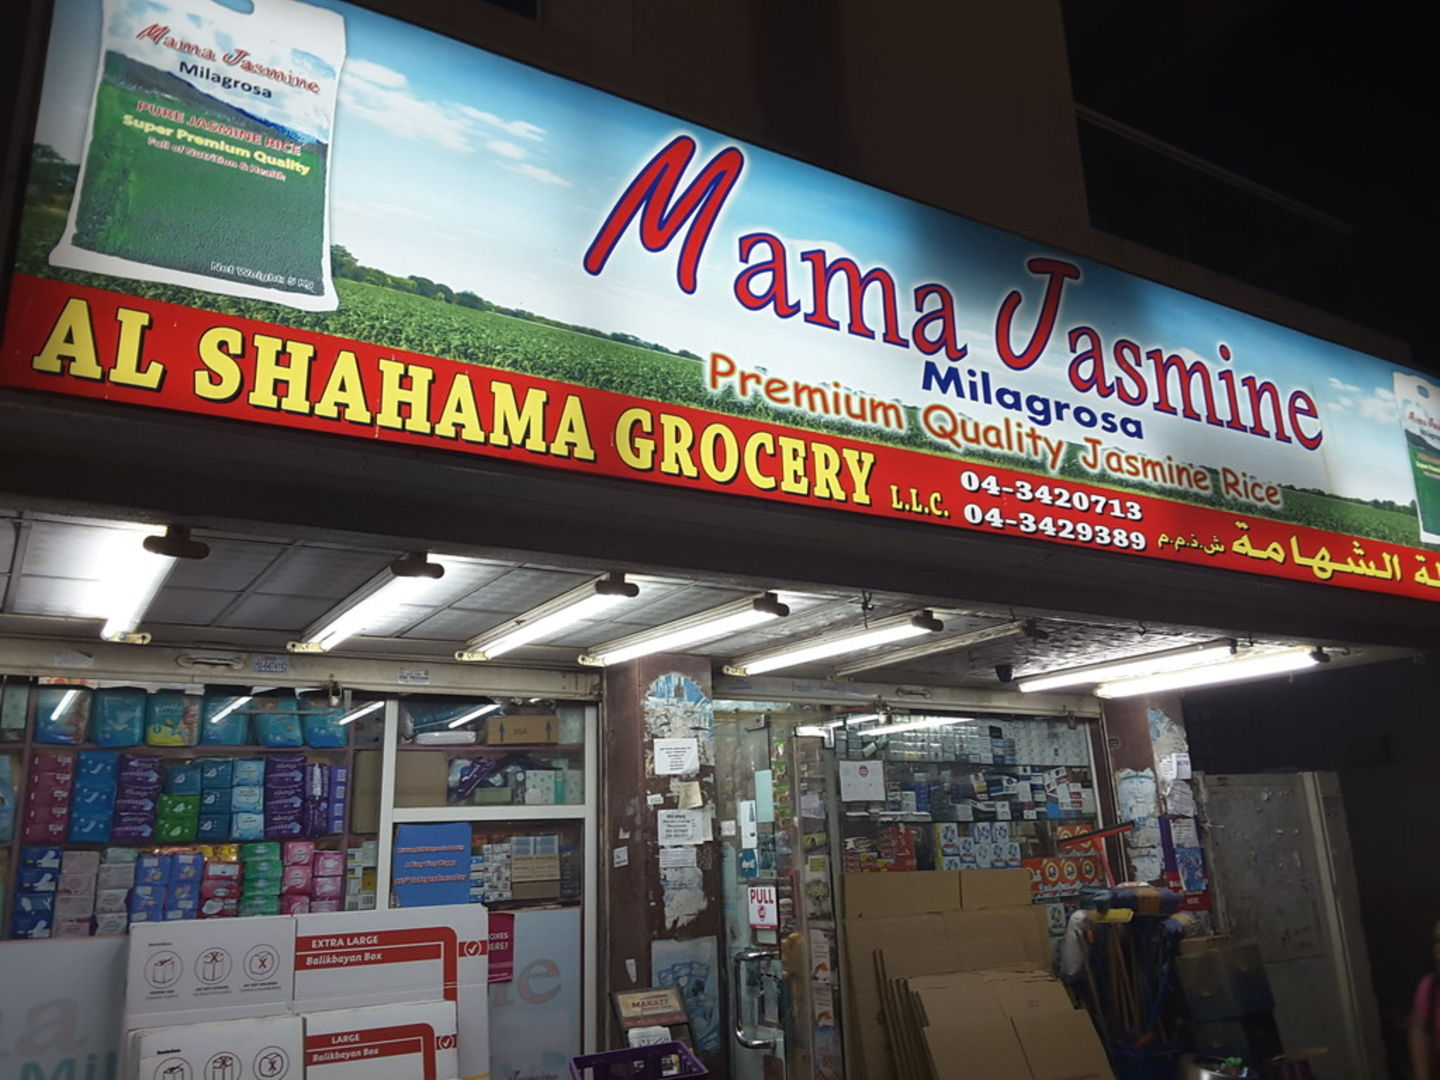 Al Shahama Grocery, (Supermarkets, Hypermarkets & Grocery Stores) in